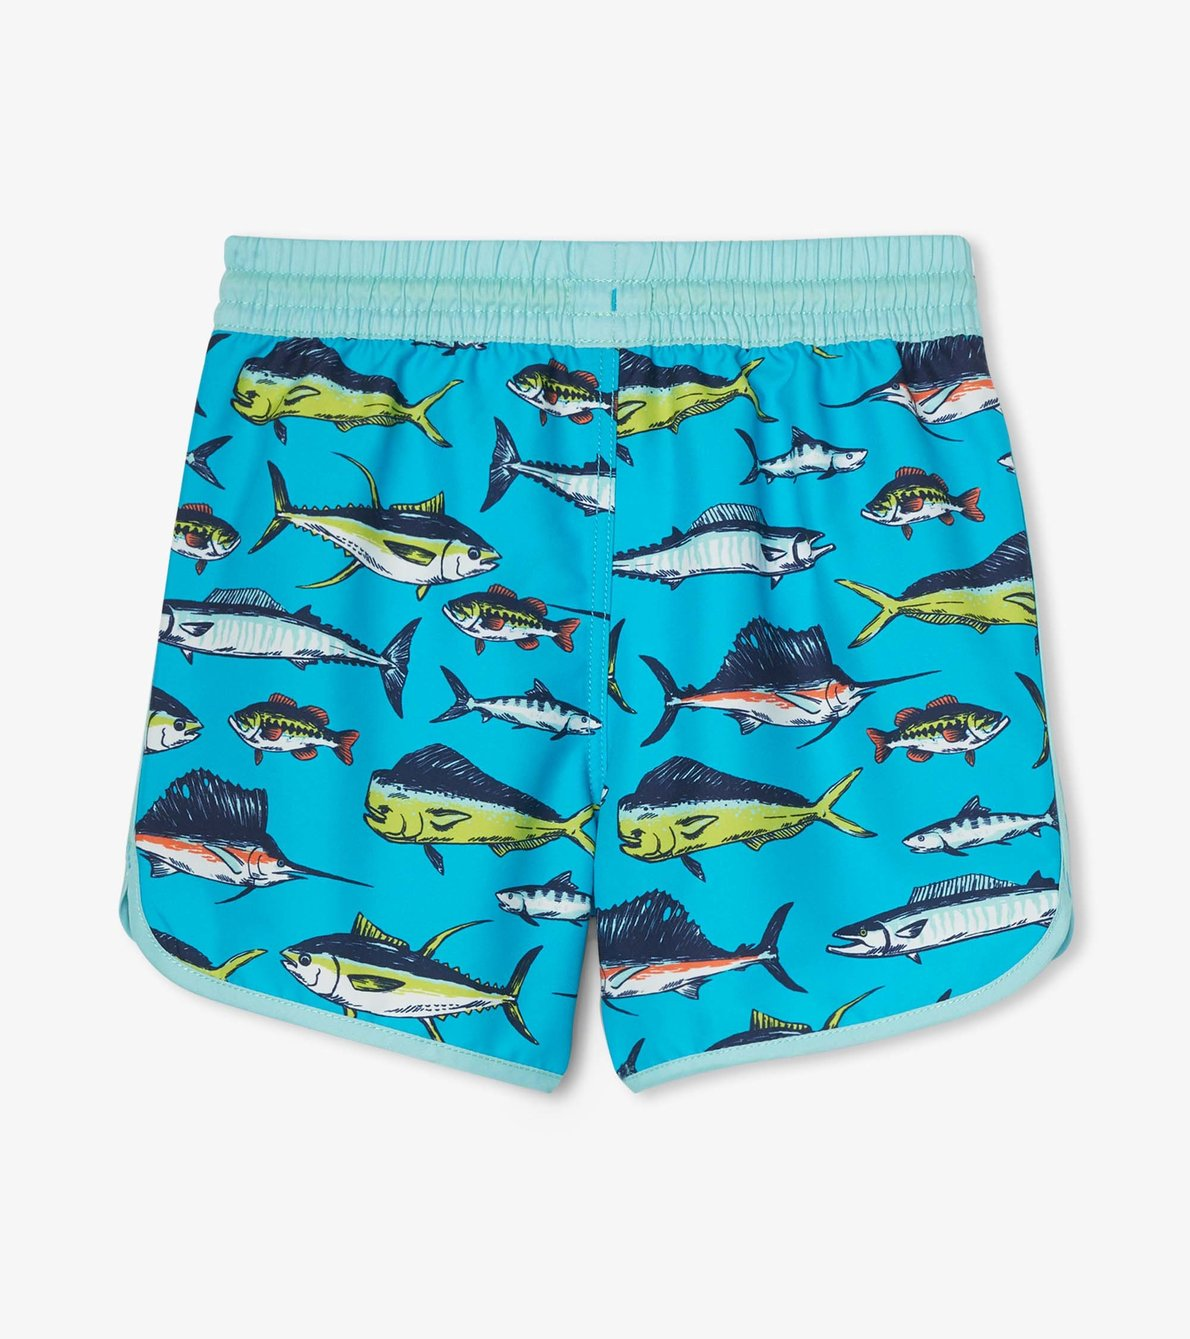 View larger image of Cool Fish Swim Shorts